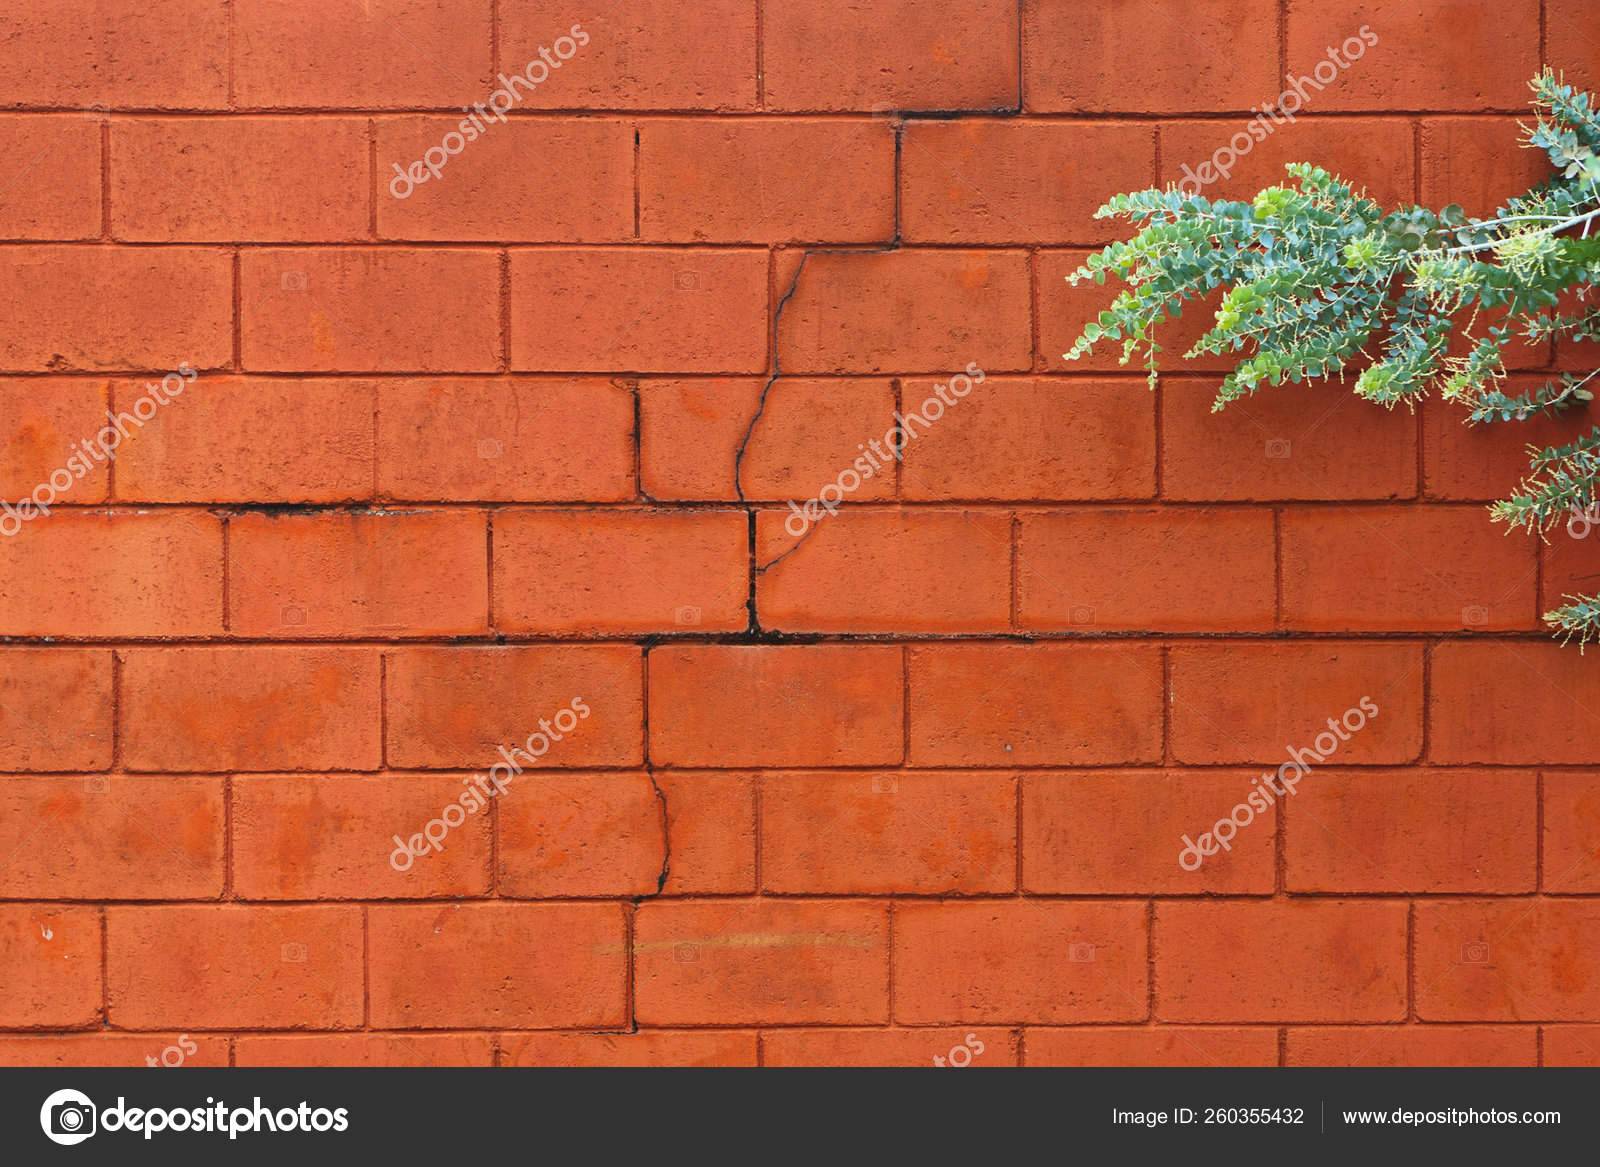 Image of: Cracked Painted Cinder Block Wall Tree Branch Right Side Frame Stock Photo C Yayimages 260355432